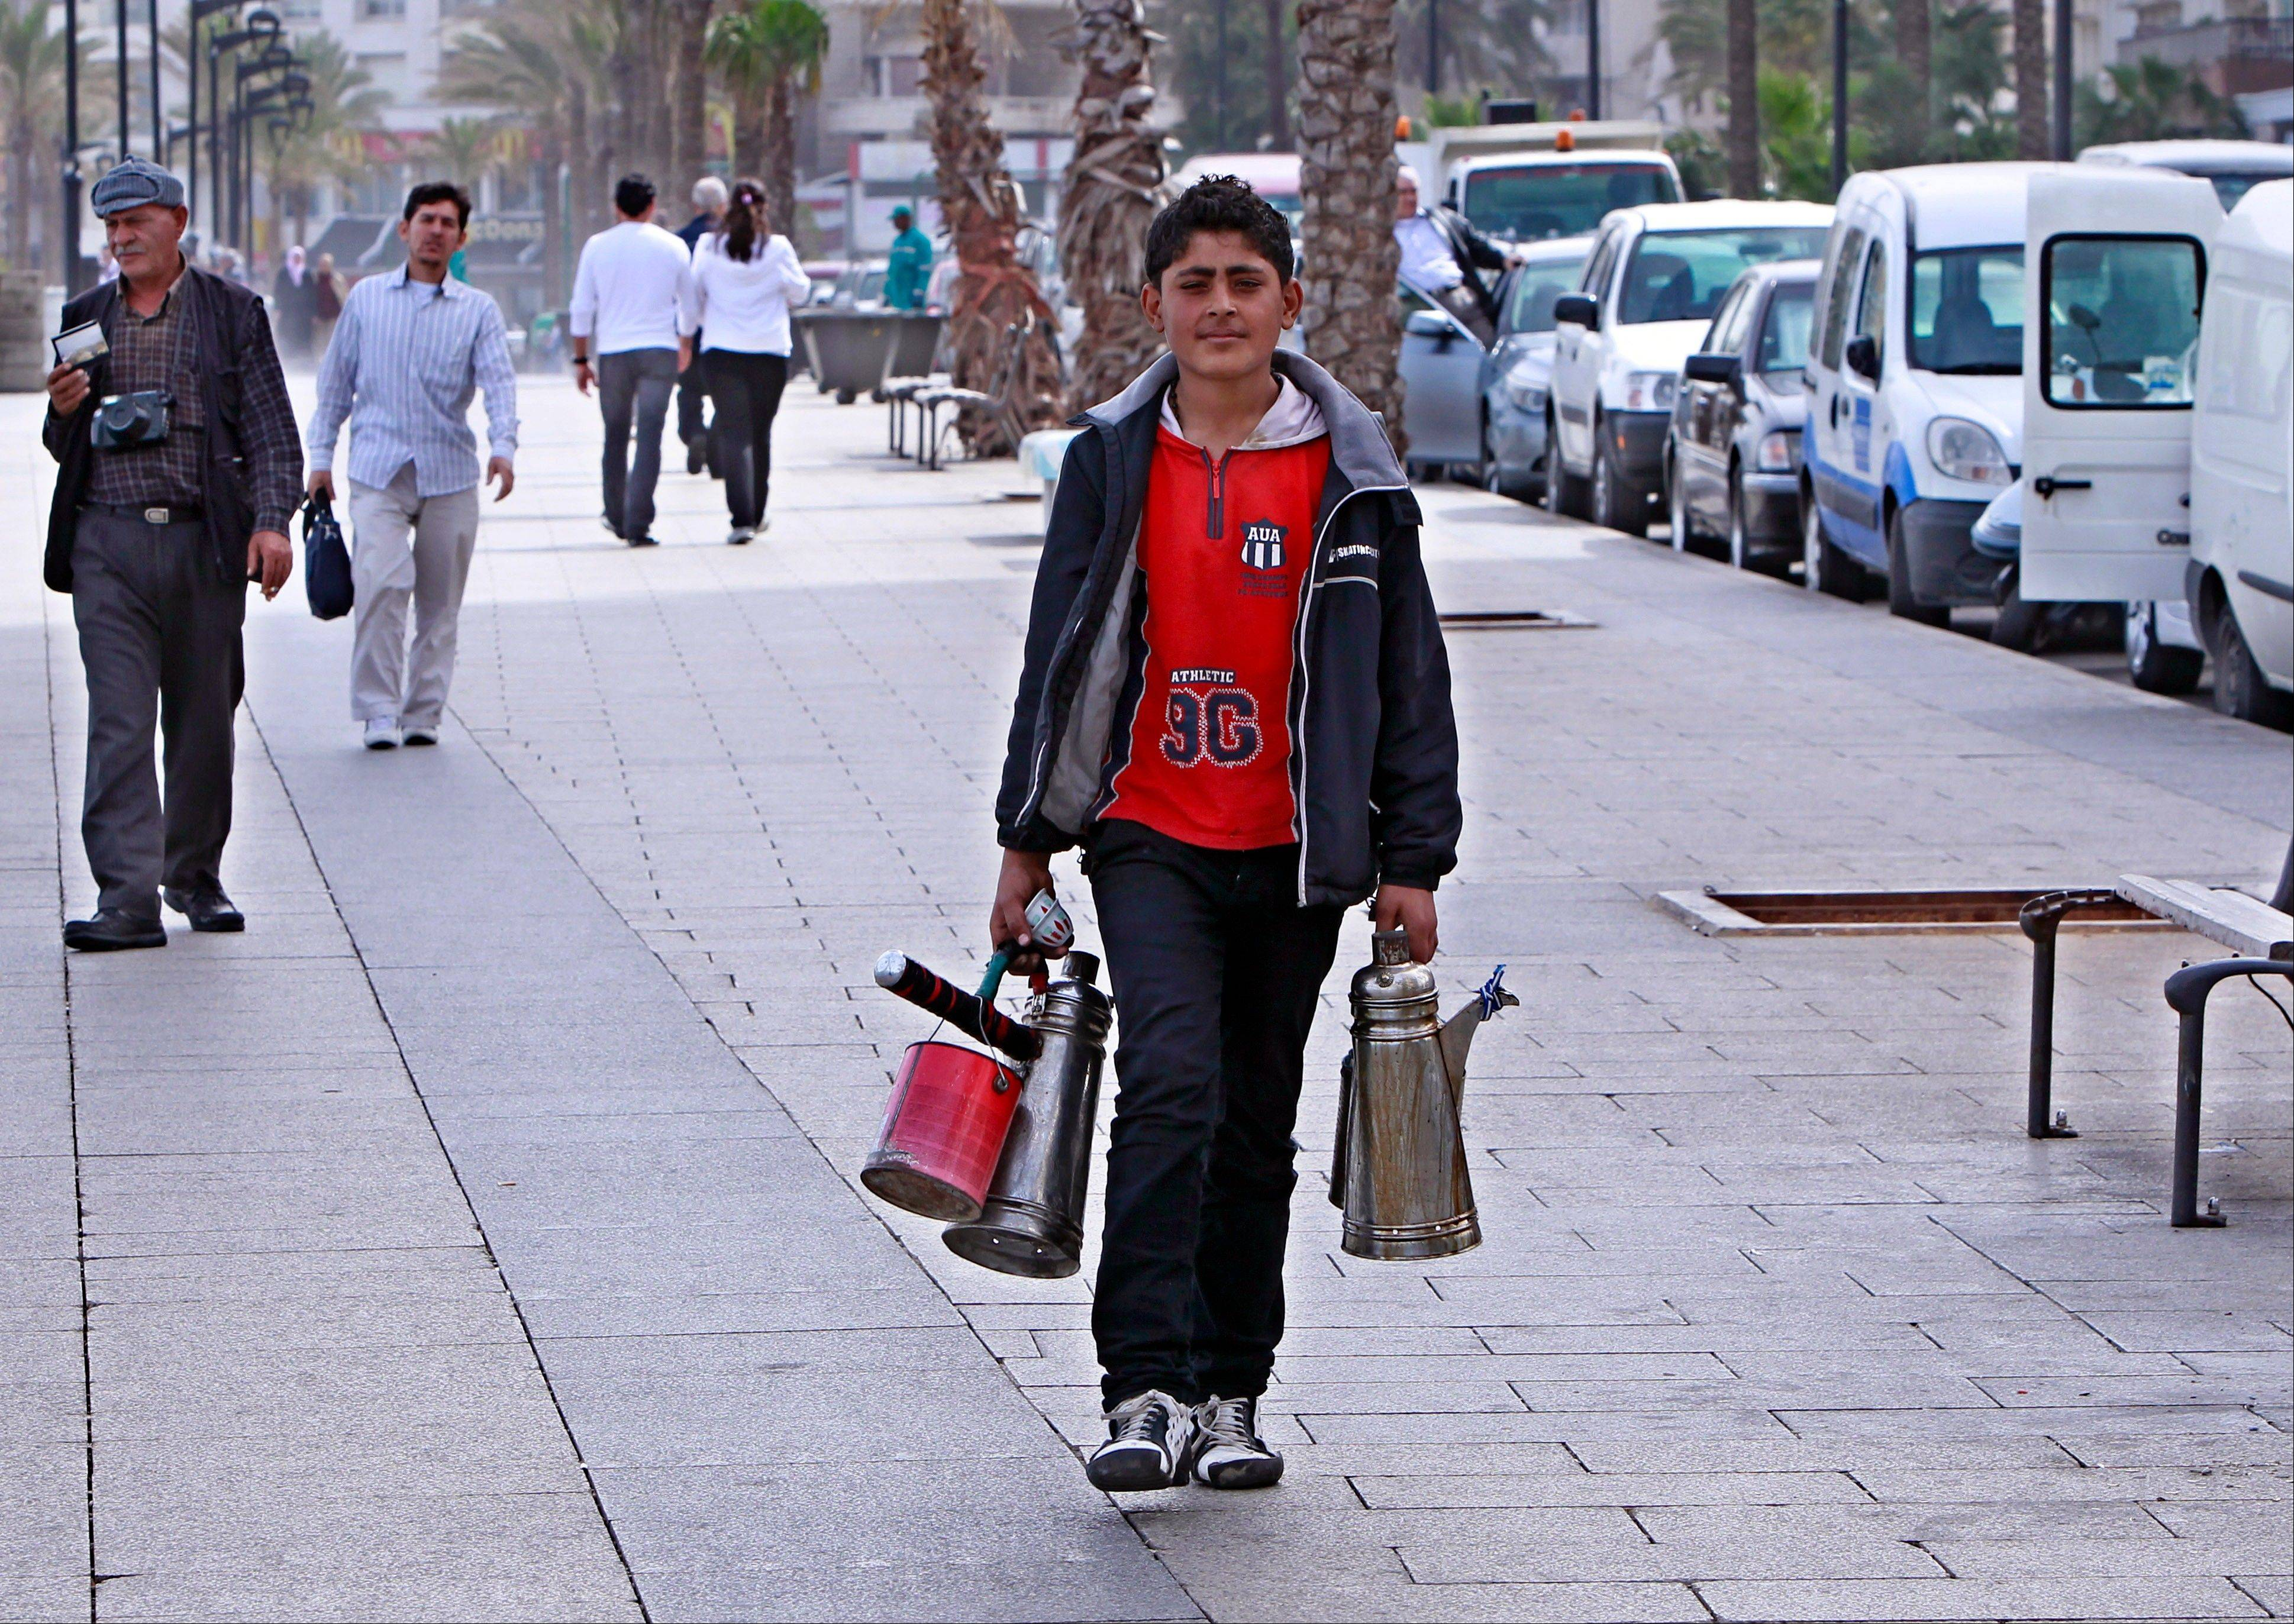 A Syrian boy Ayman, 14, who fled his home from Aleppo, makes a living by selling coffee in Beirut, Lebanon. Countless young Syrians are now frequently seen wandering the streets of Beirut, pumping gas at stations and sometimes begging for money.